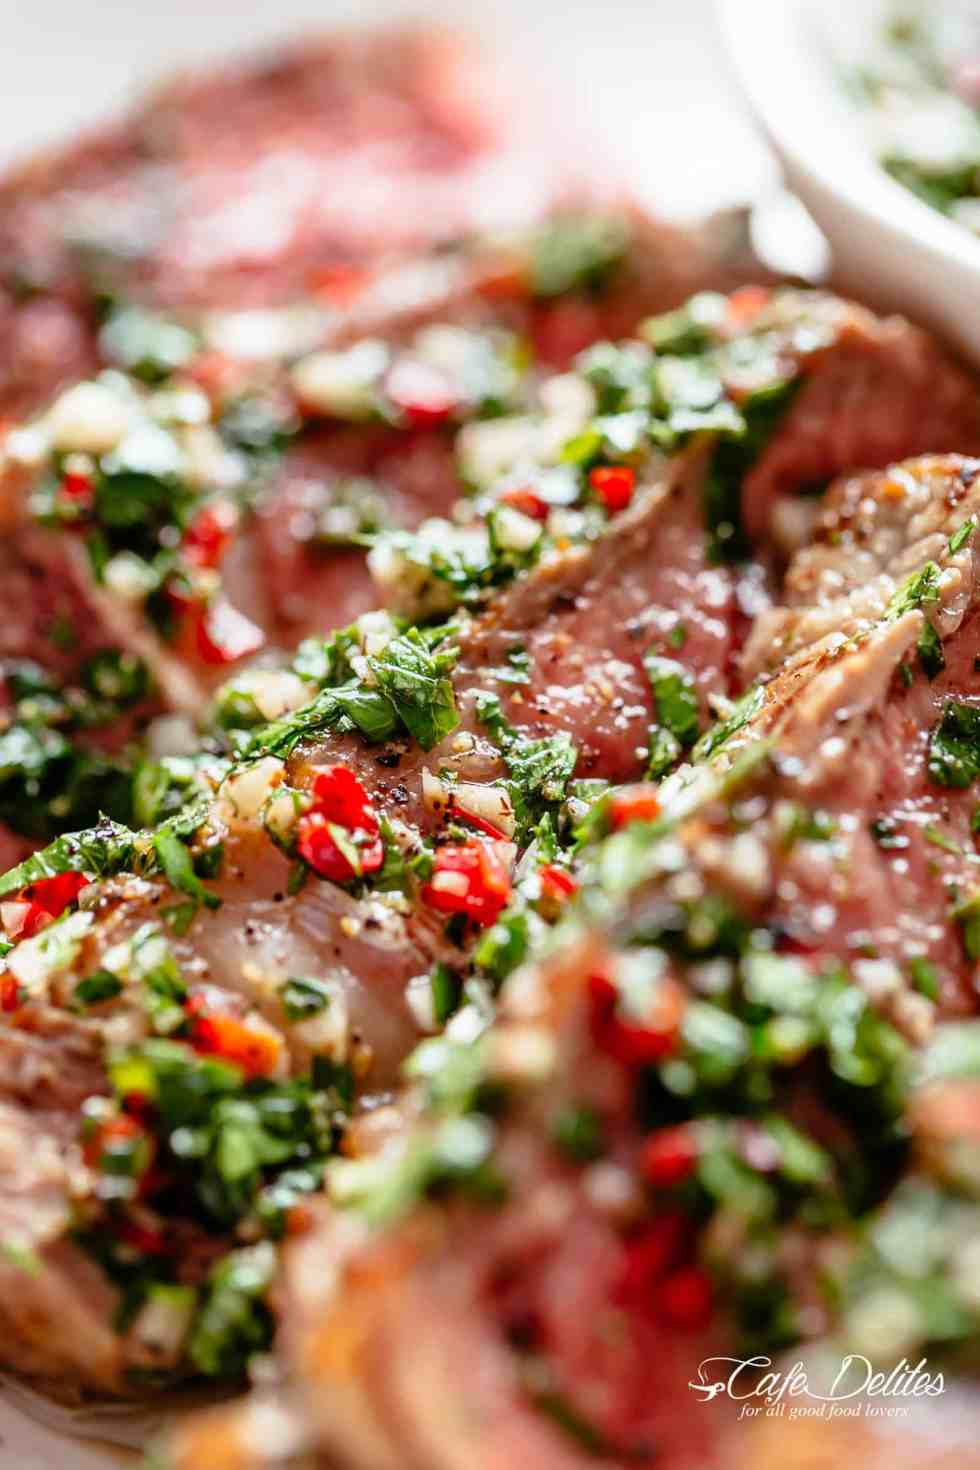 Chimichurri is the most delicious silky condiment that drips over your steak, chicken or fish. Super easy to make and tastes incredible!   cafedelites.com